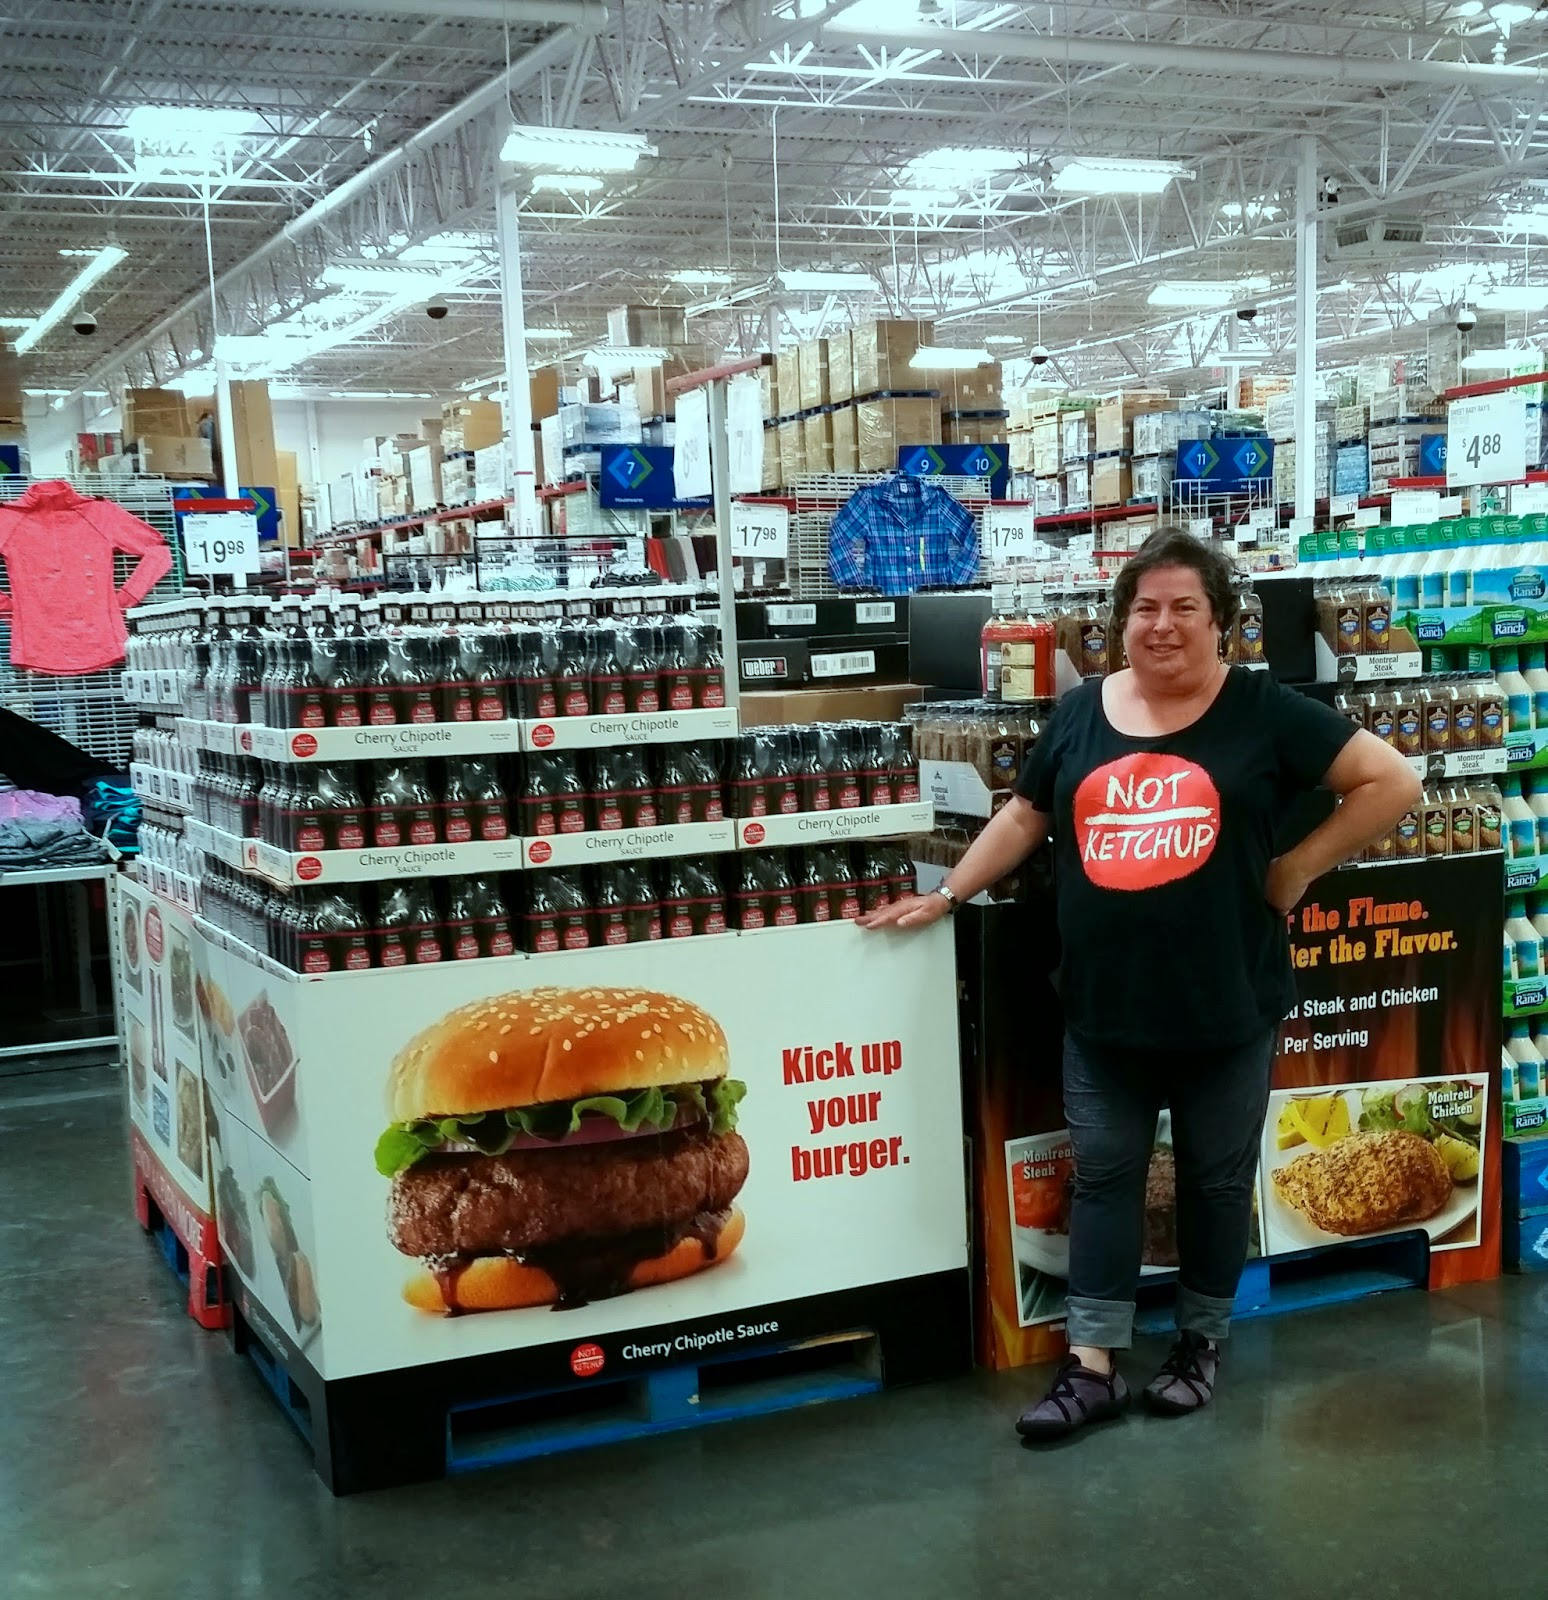 Cherry Chipotle Not Ketchup fruit ketchup sauce at Sam's Club Fountain Valley with CEO Erika Kerekes